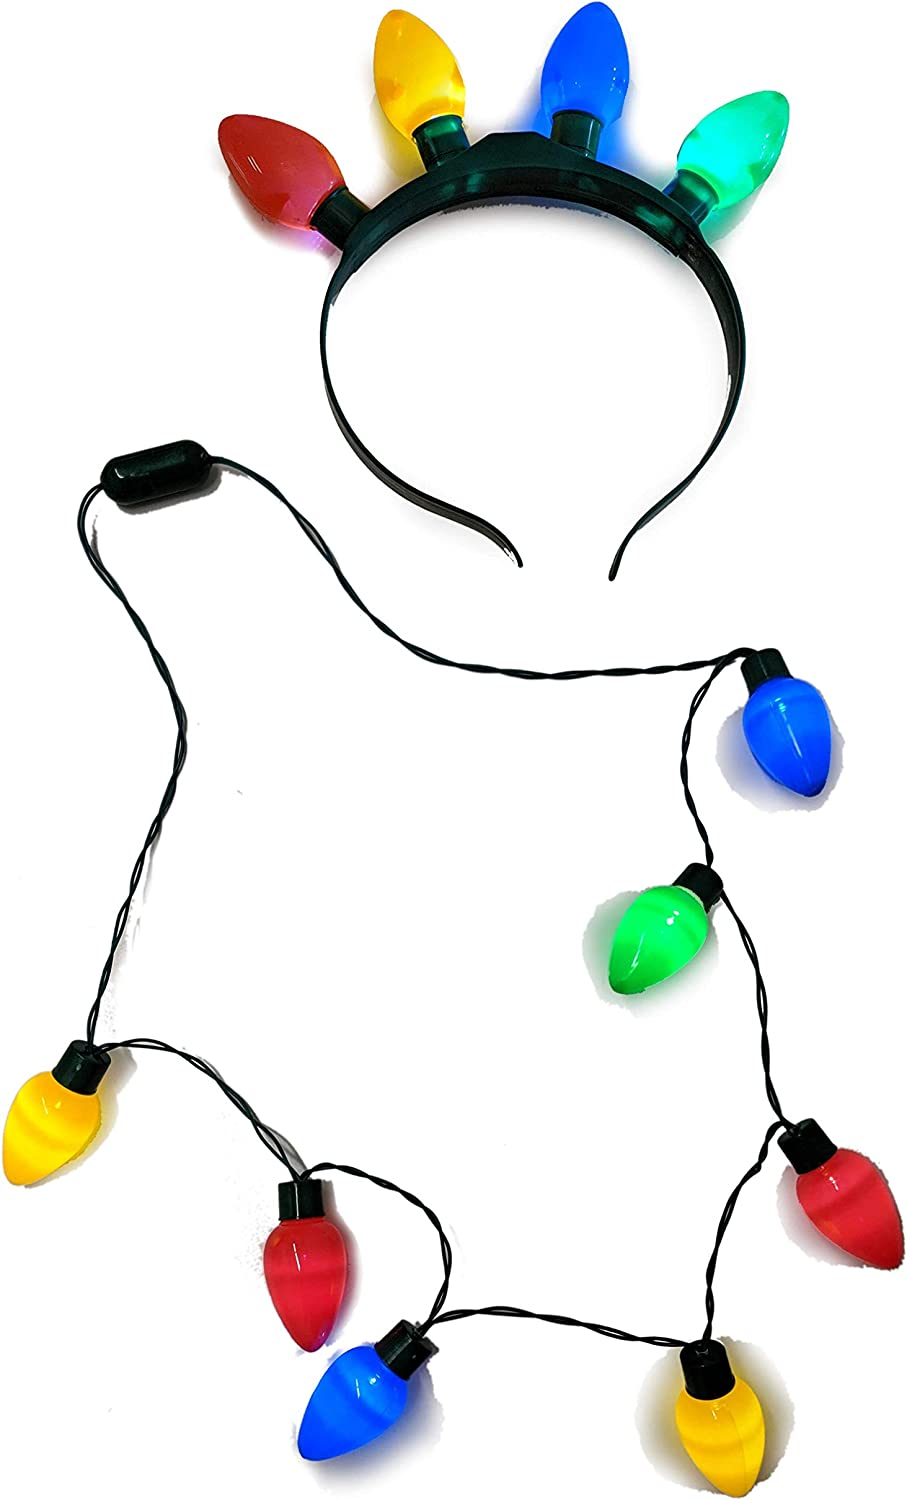 2 Pack LED Light Up Bulb Flashing Headband Lightbulb Necklace Dress-up Christmas Holiday Accessories Party Favors